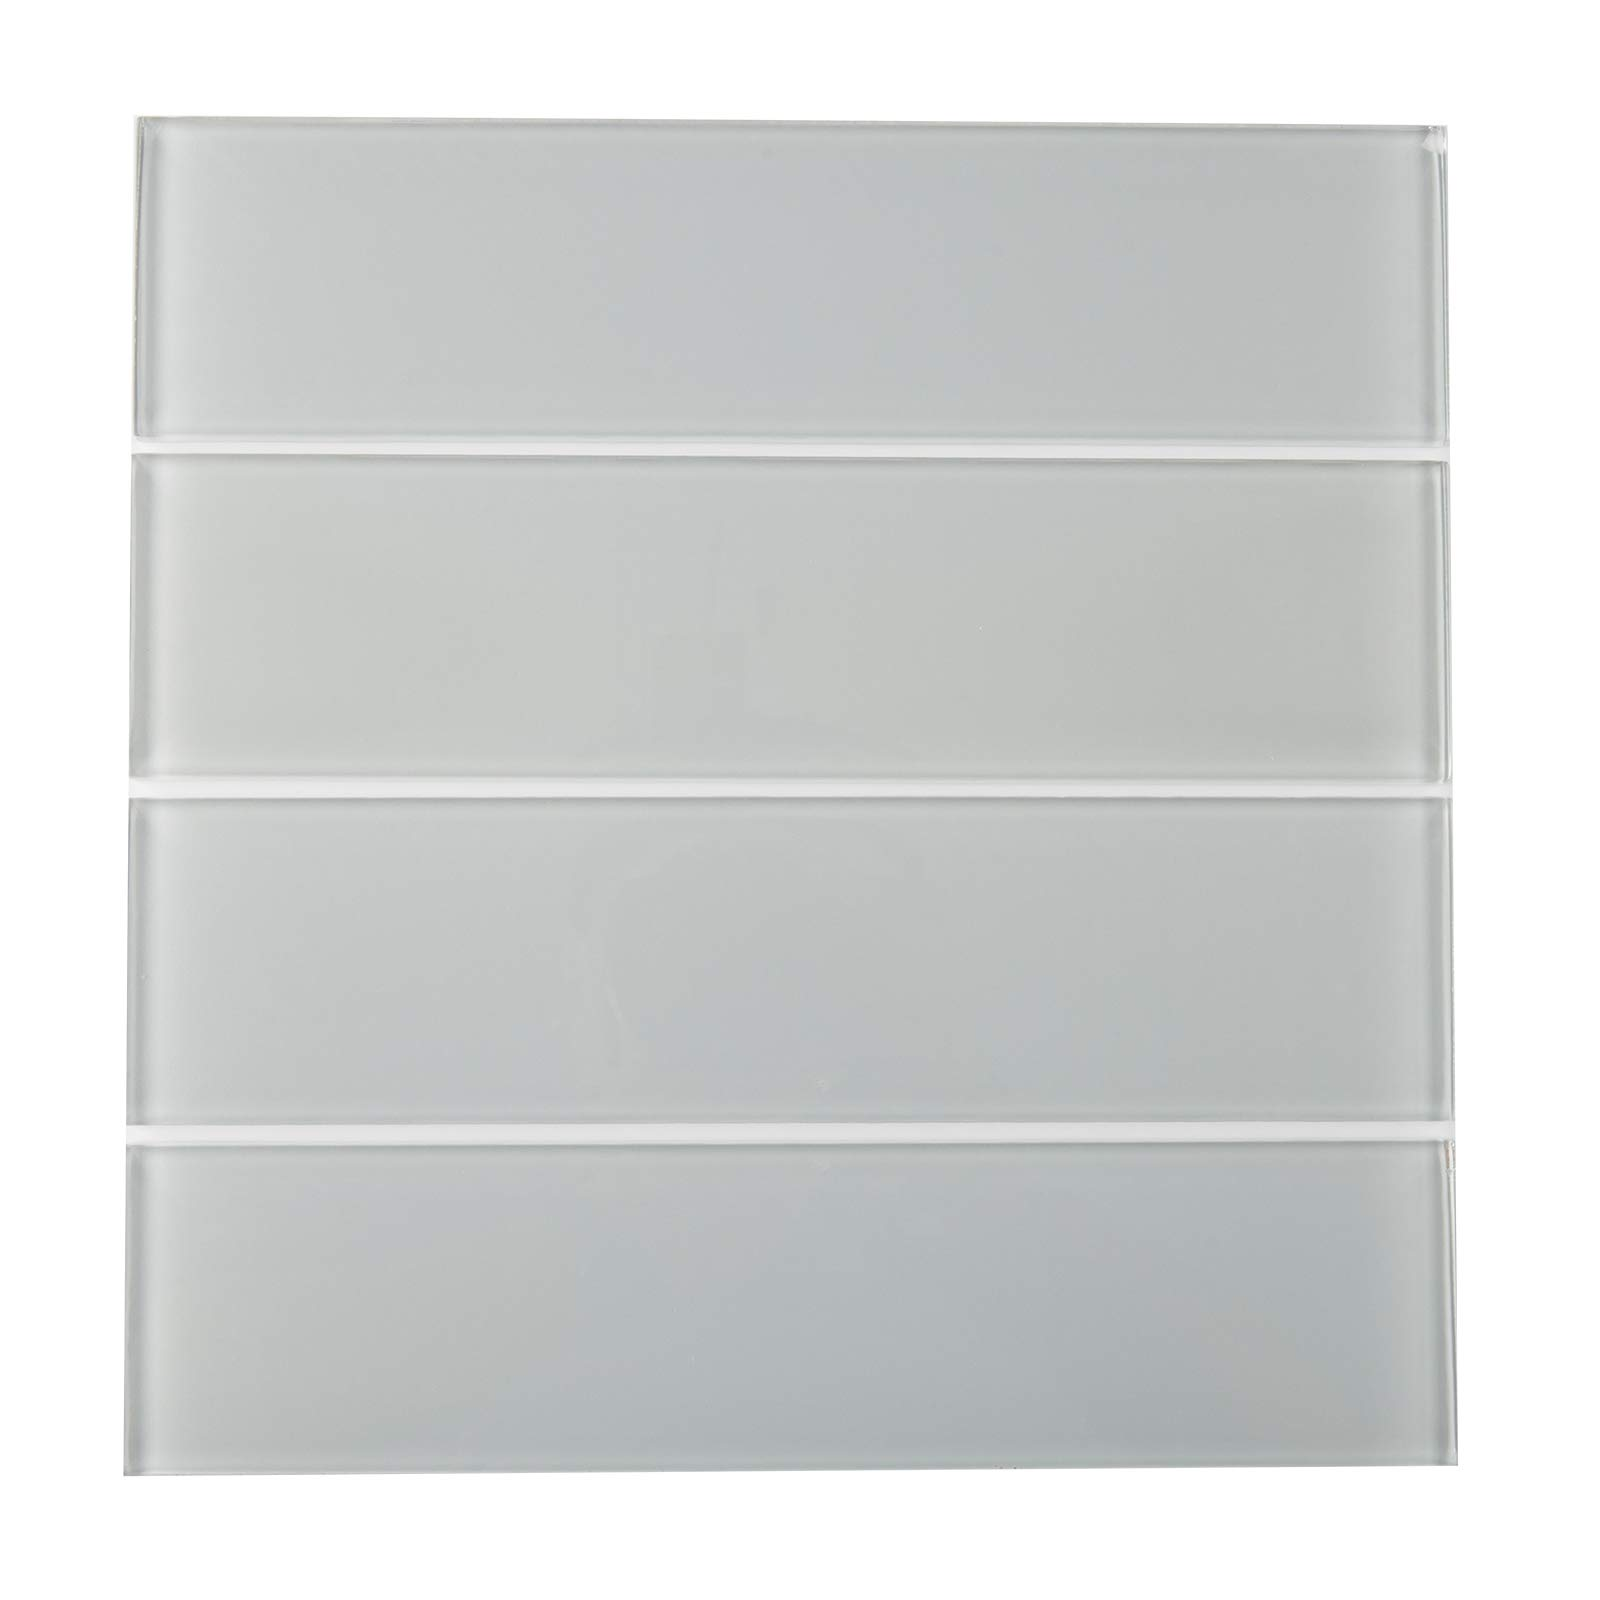 Glass Subway Tile,''Oracle Collection'', GTSU 002 - Silver Grey, 3''X12'', 4 Pieces per SQFT (Box of 5 SQFT) by Mosaic Warehouse